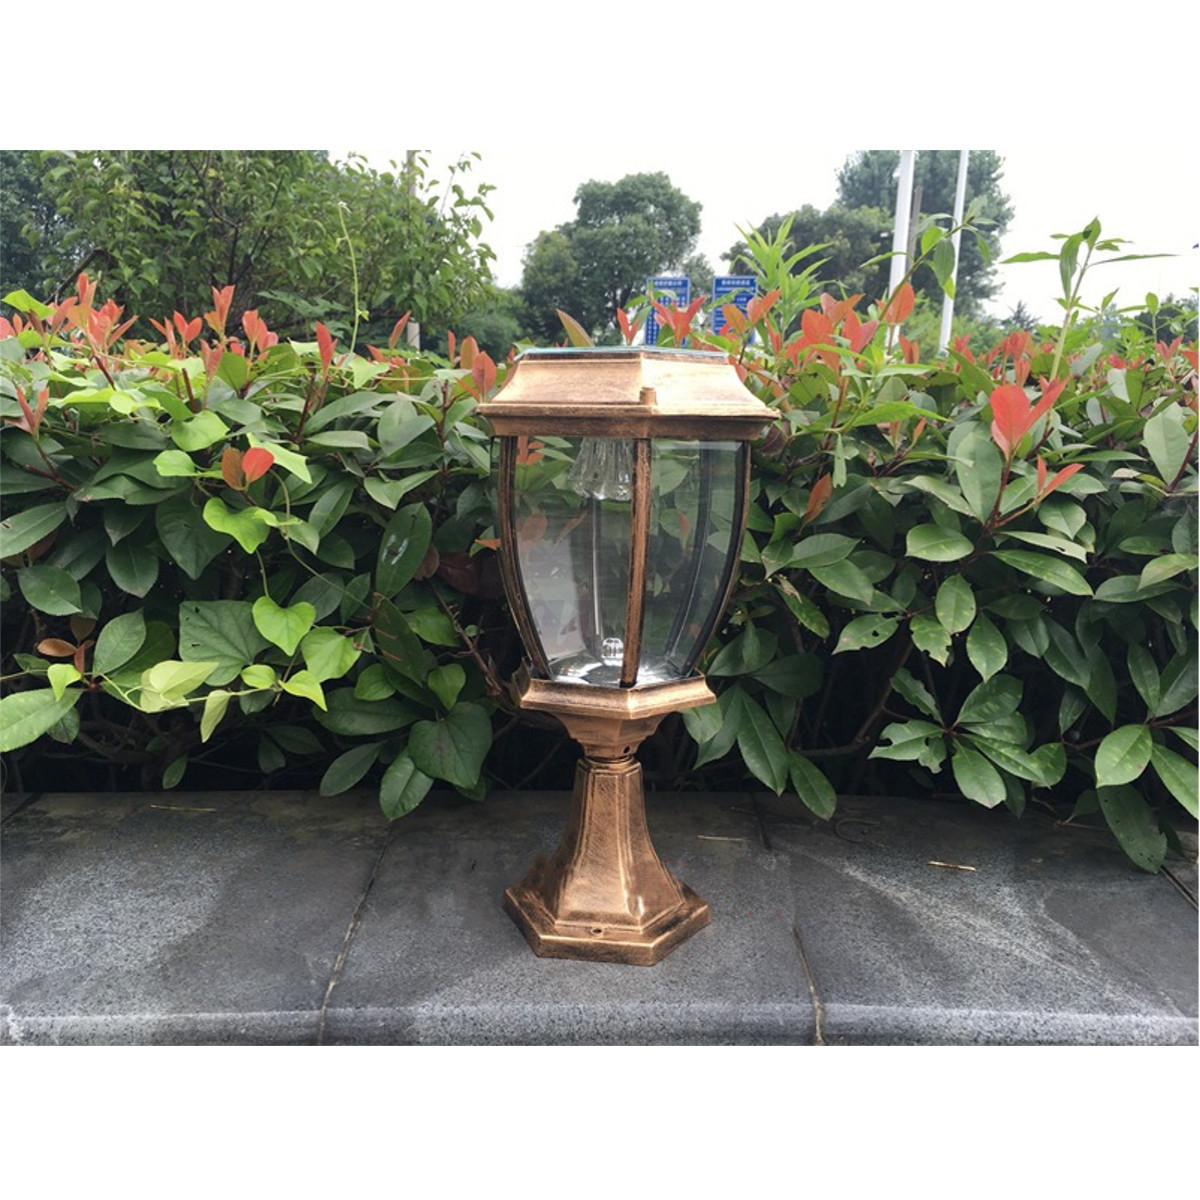 2x outdoor exterior solar powered led pillar light post lamp garden yard lantern ebay for Solar exterior post lantern light